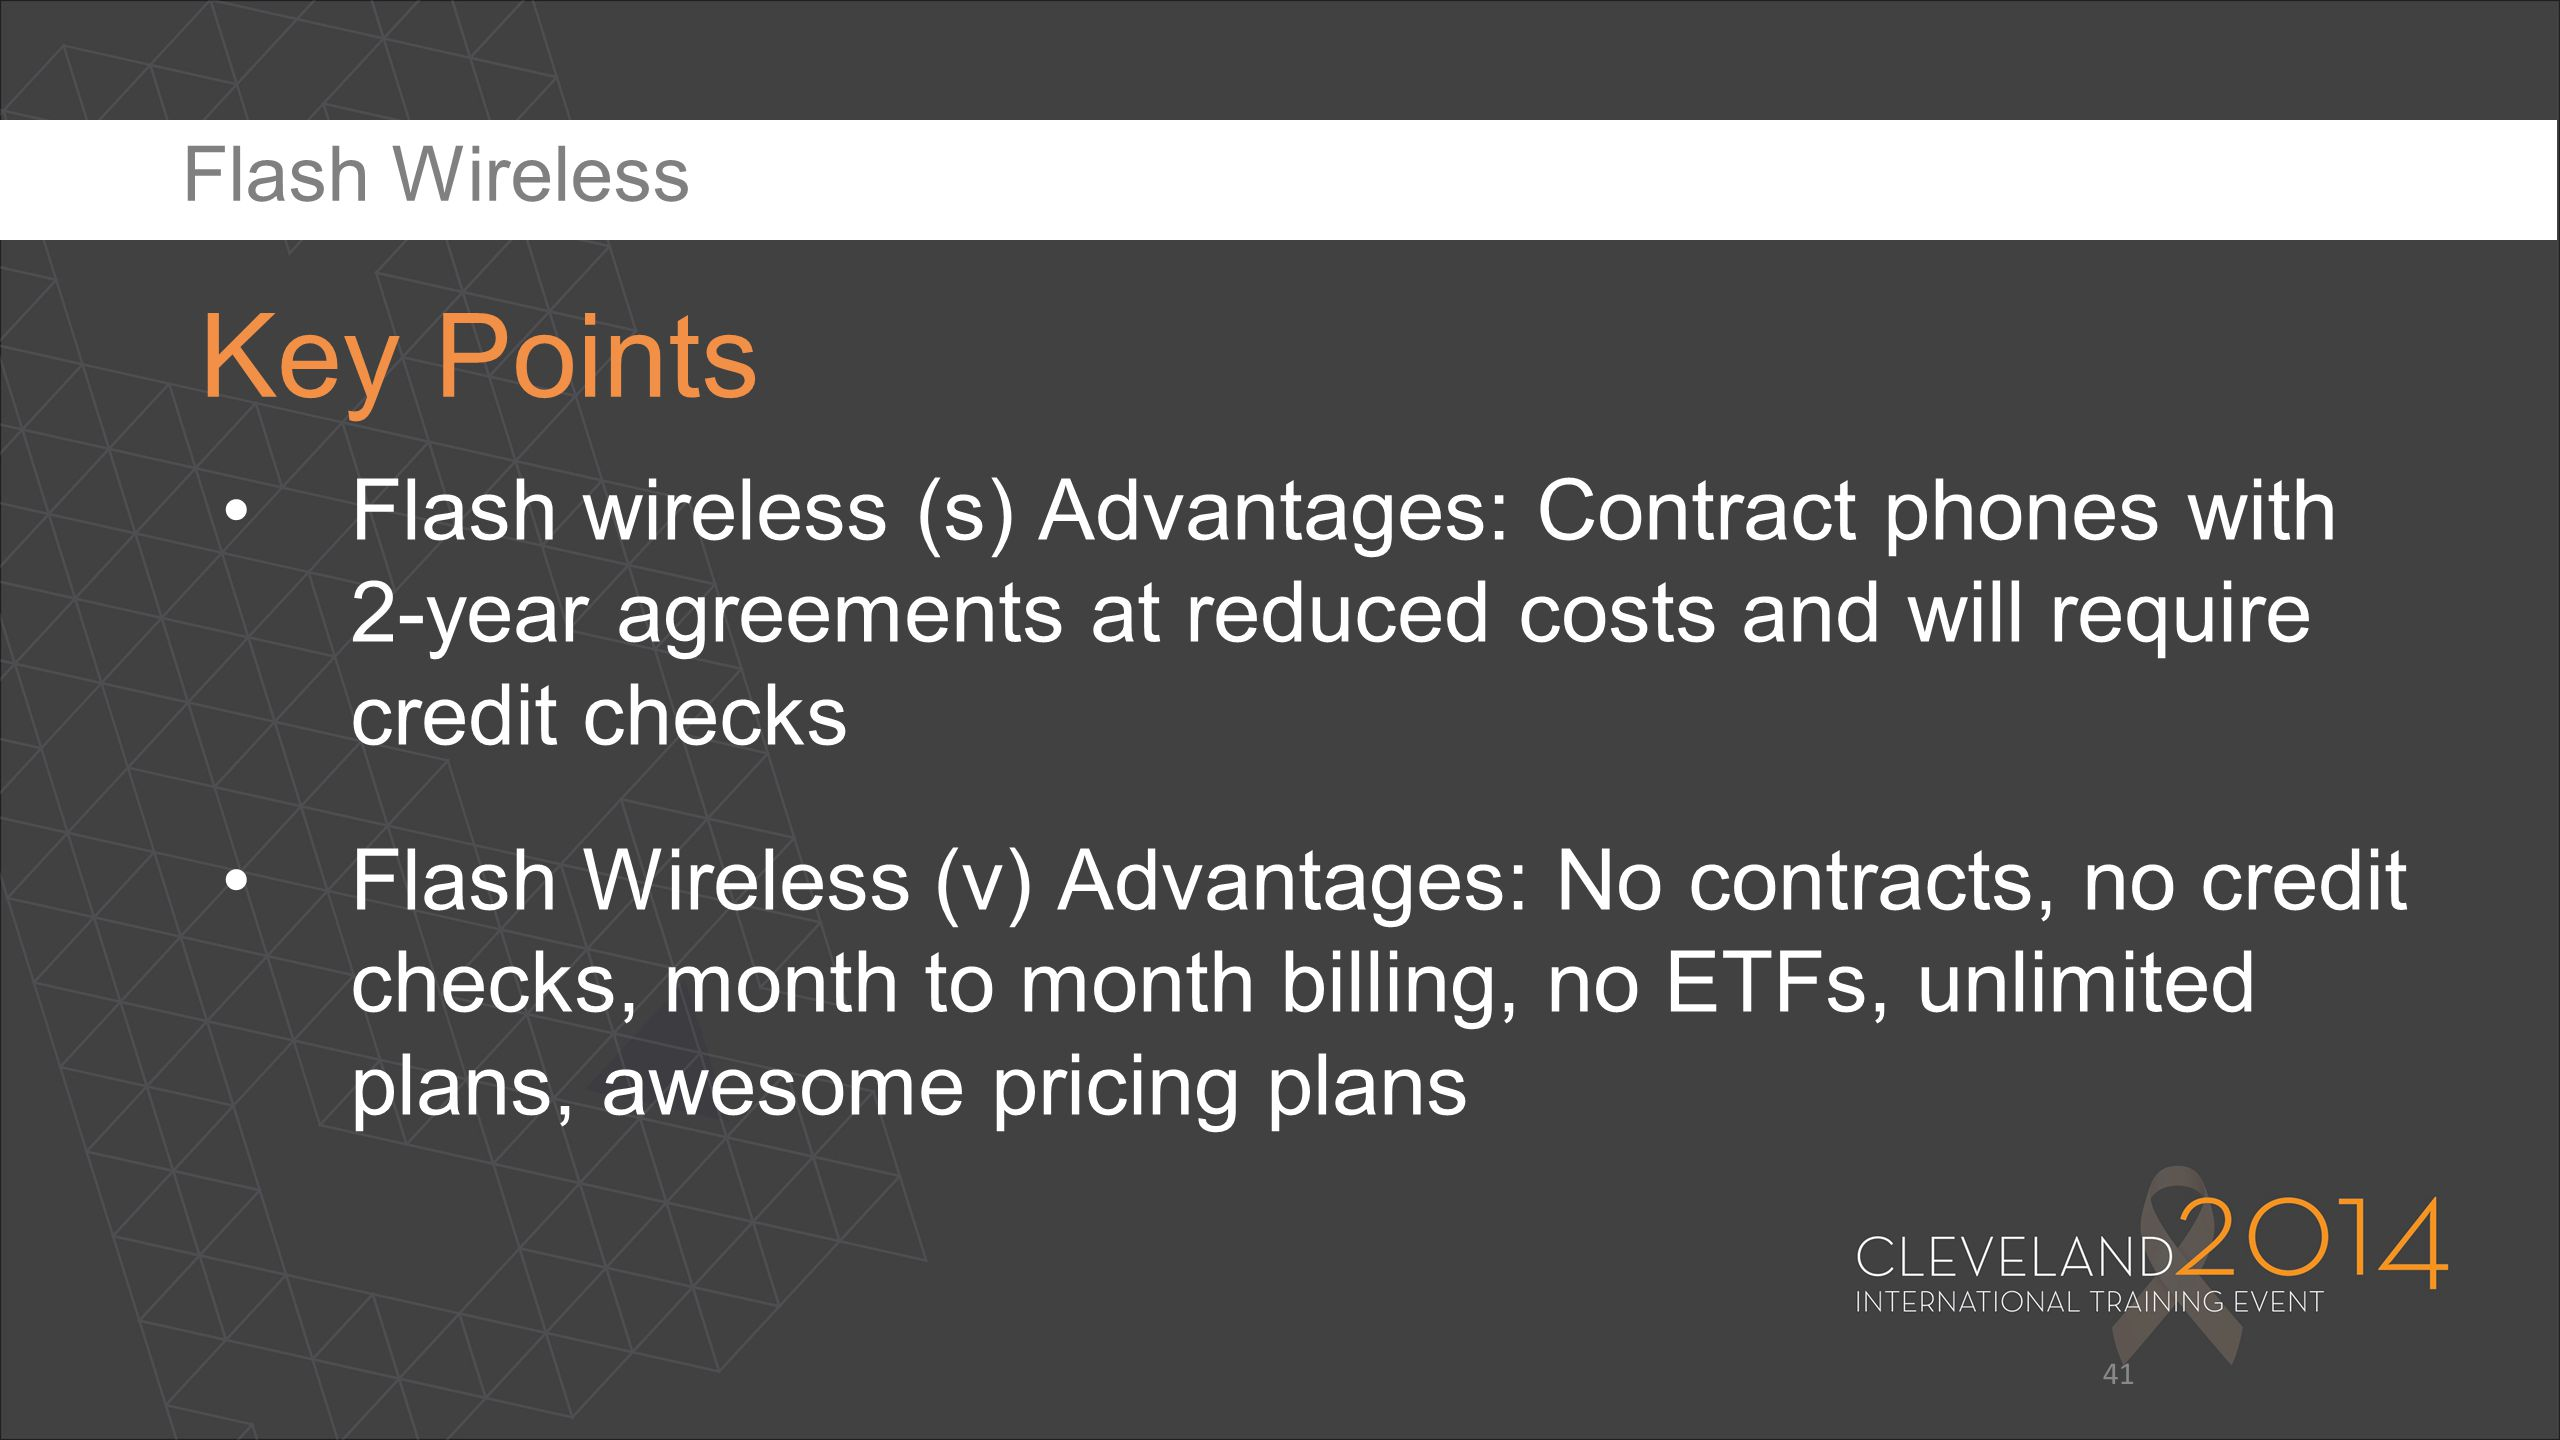 Flash Wireless Key Points. Flash wireless (s) Advantages: Contract phones with 2-year agreements at reduced costs and will require credit checks.